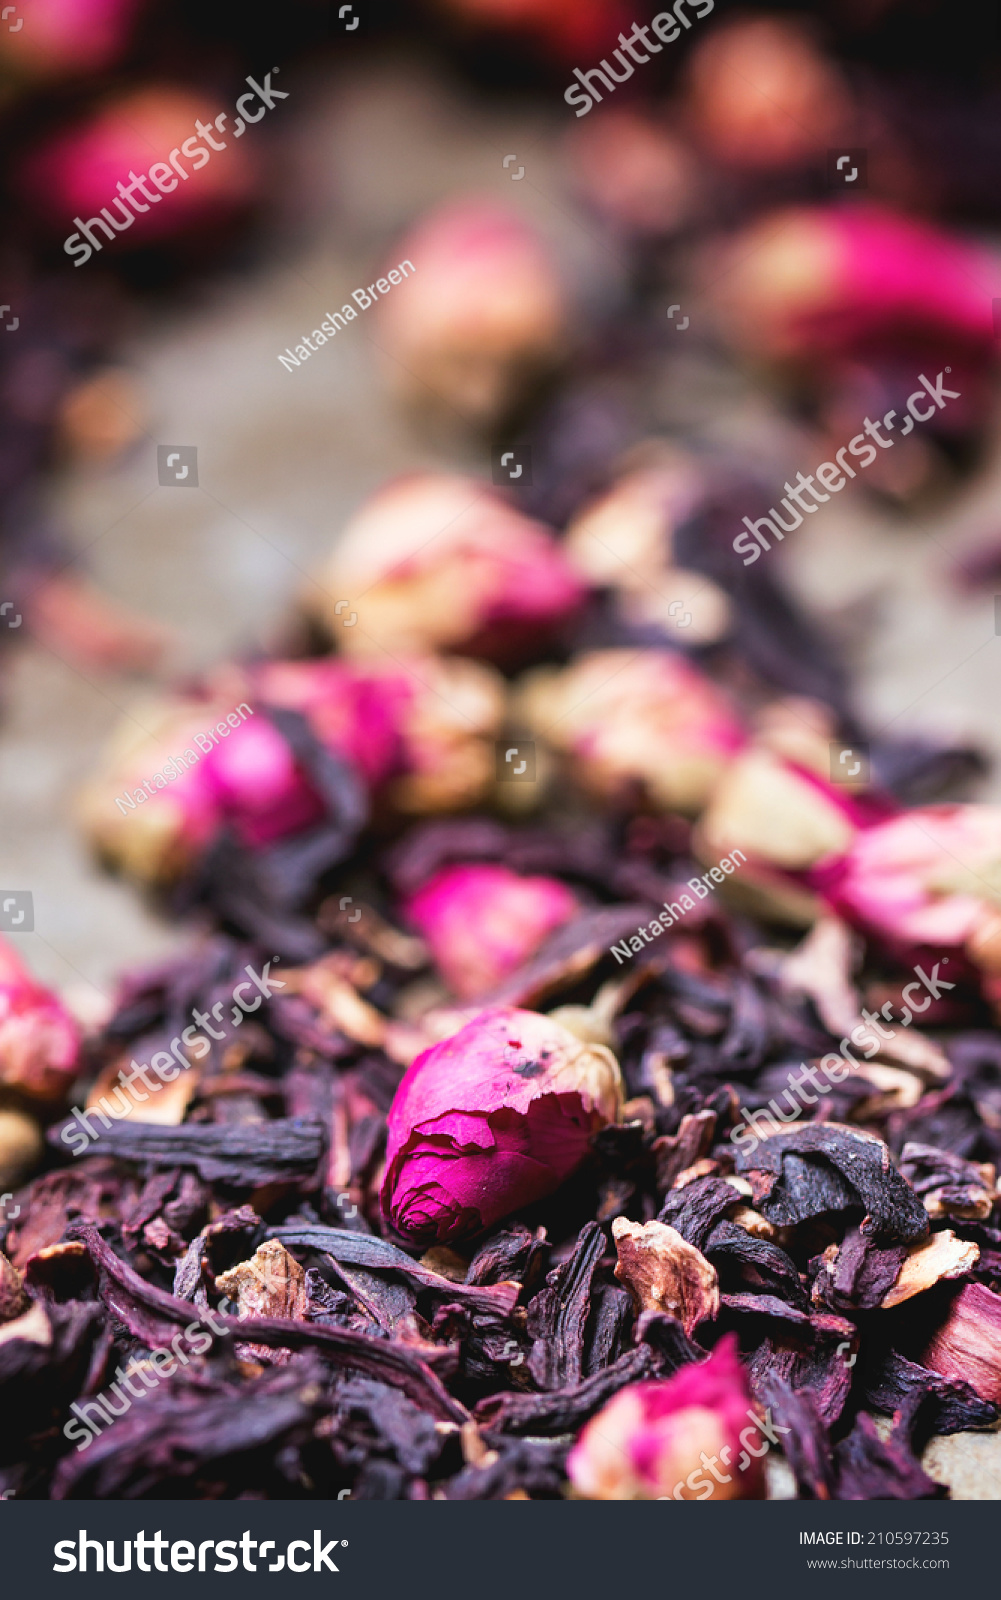 Heap tea roses dried hibiscus flower stock photo 210597235 heap of tea roses and dried hibiscus flower izmirmasajfo